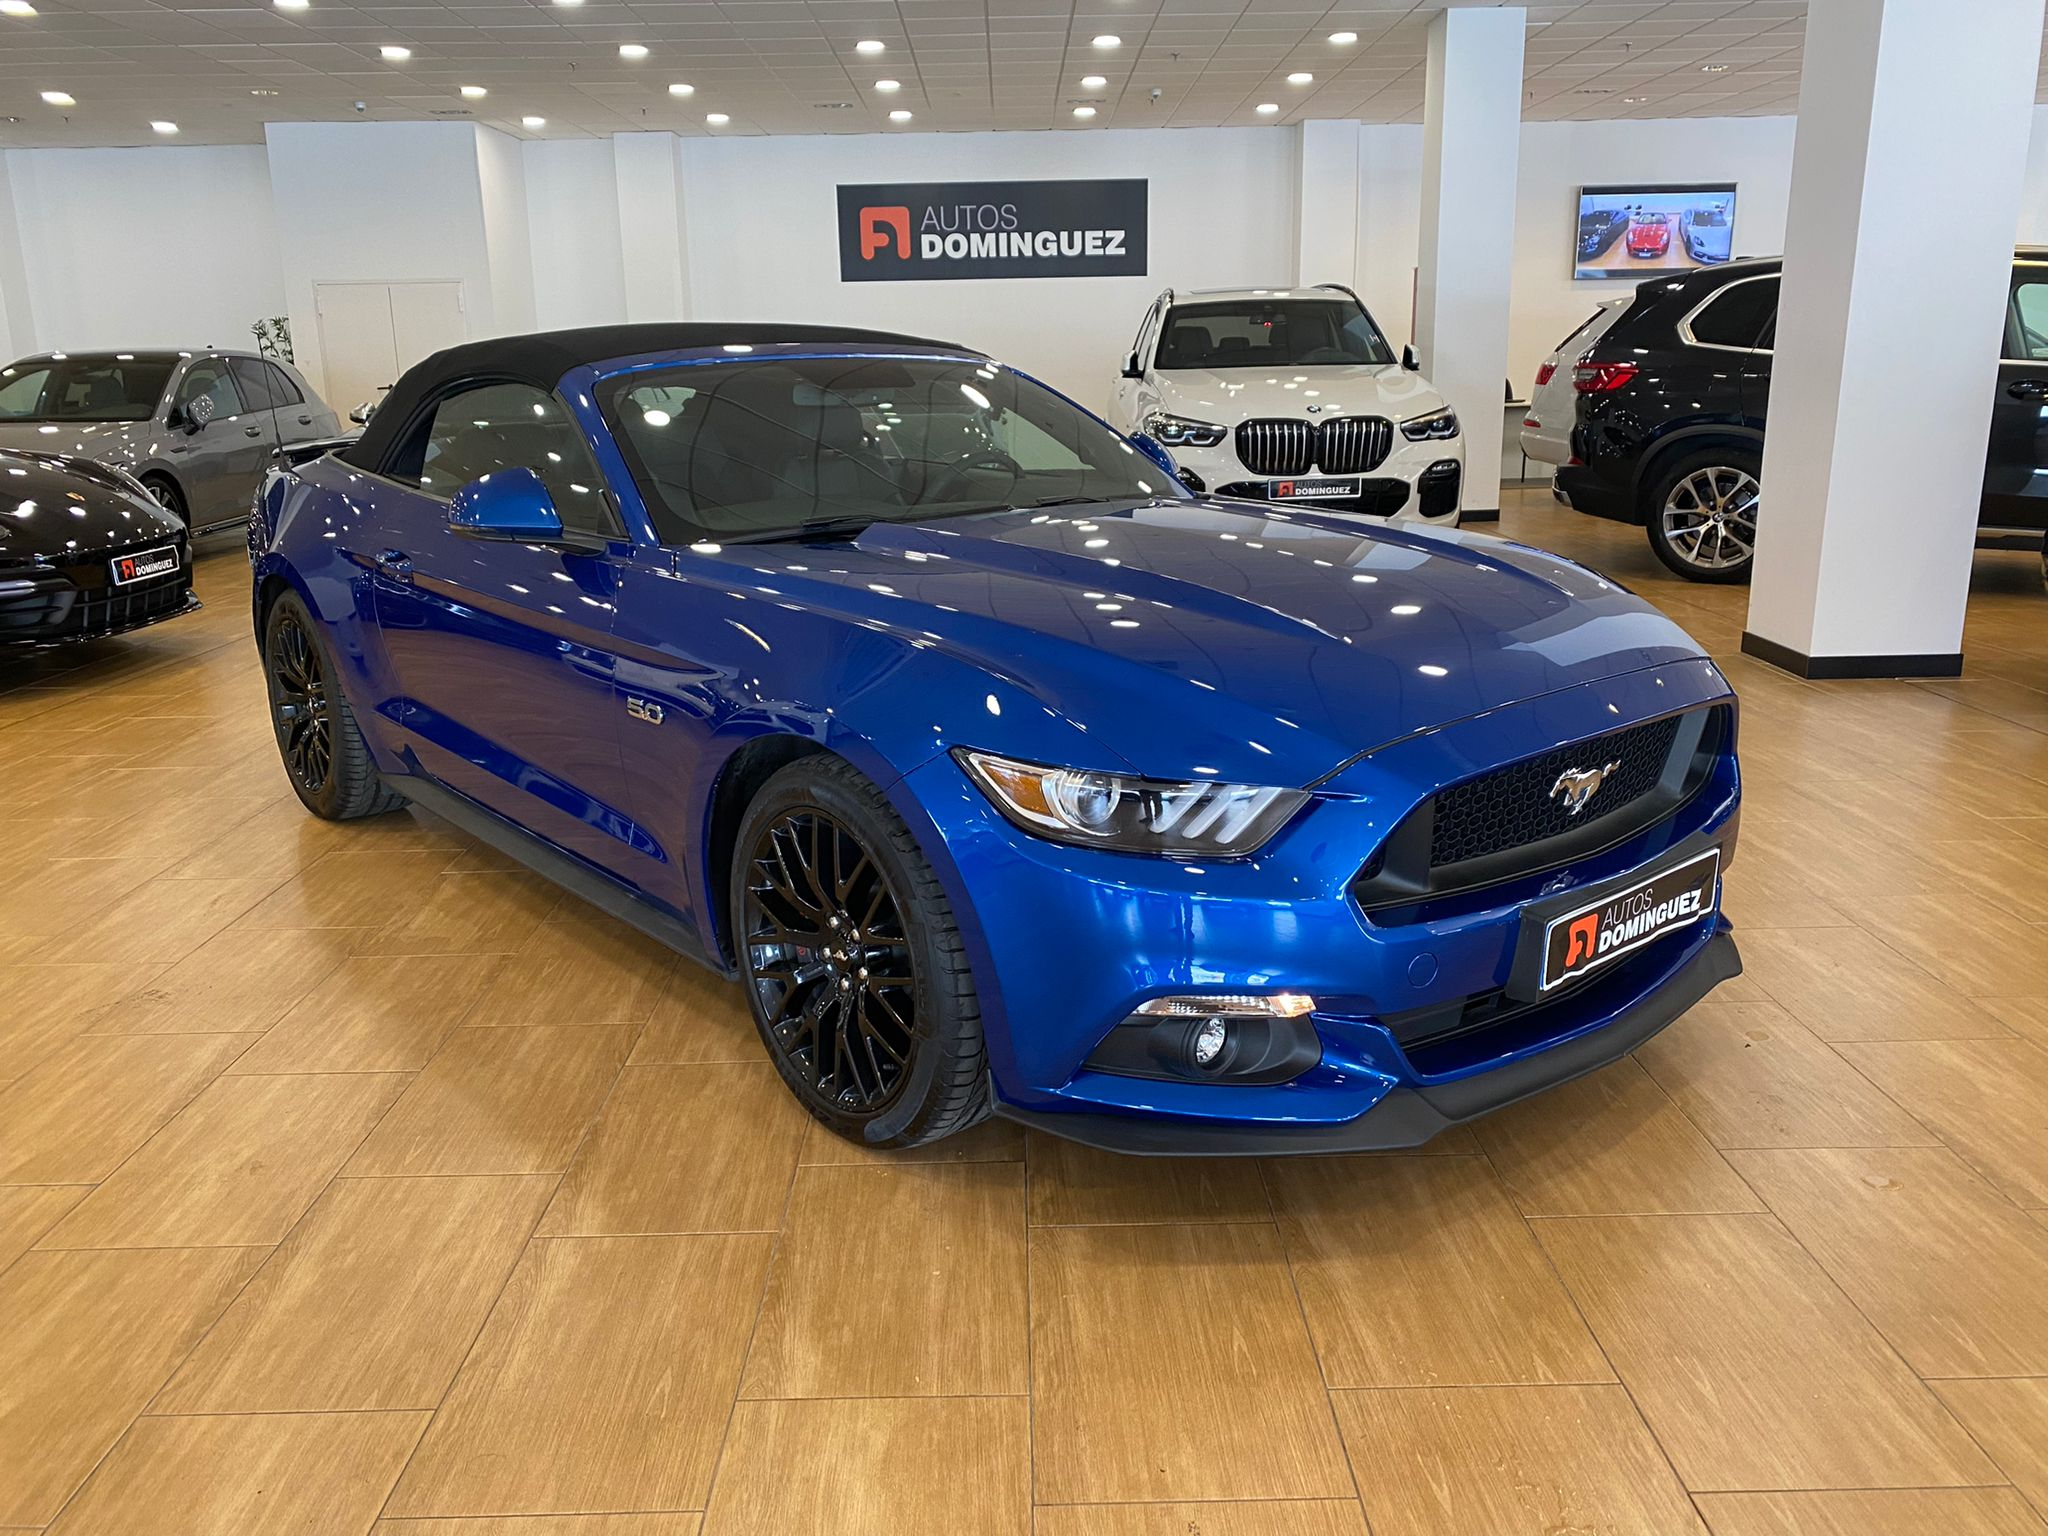 FORD Mustang 5.0 TiVCT V8 307kW Mustang GT Conv. 2p.